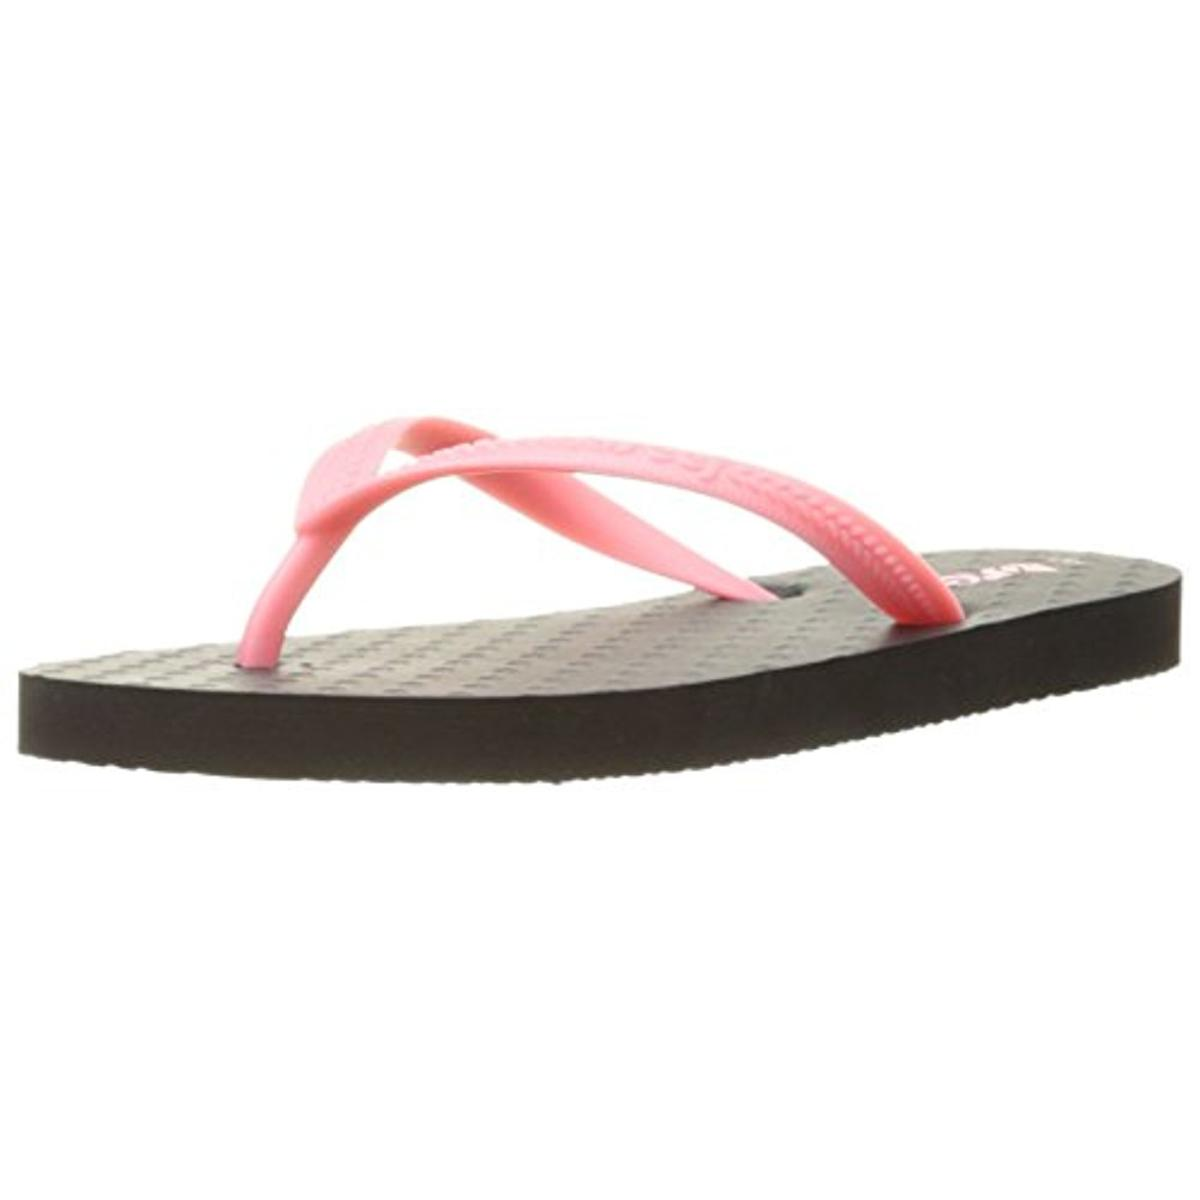 64625a392 Reef Black Toddler Thong Sandals Flip-Flops 7/8 BHFO 9256 ...